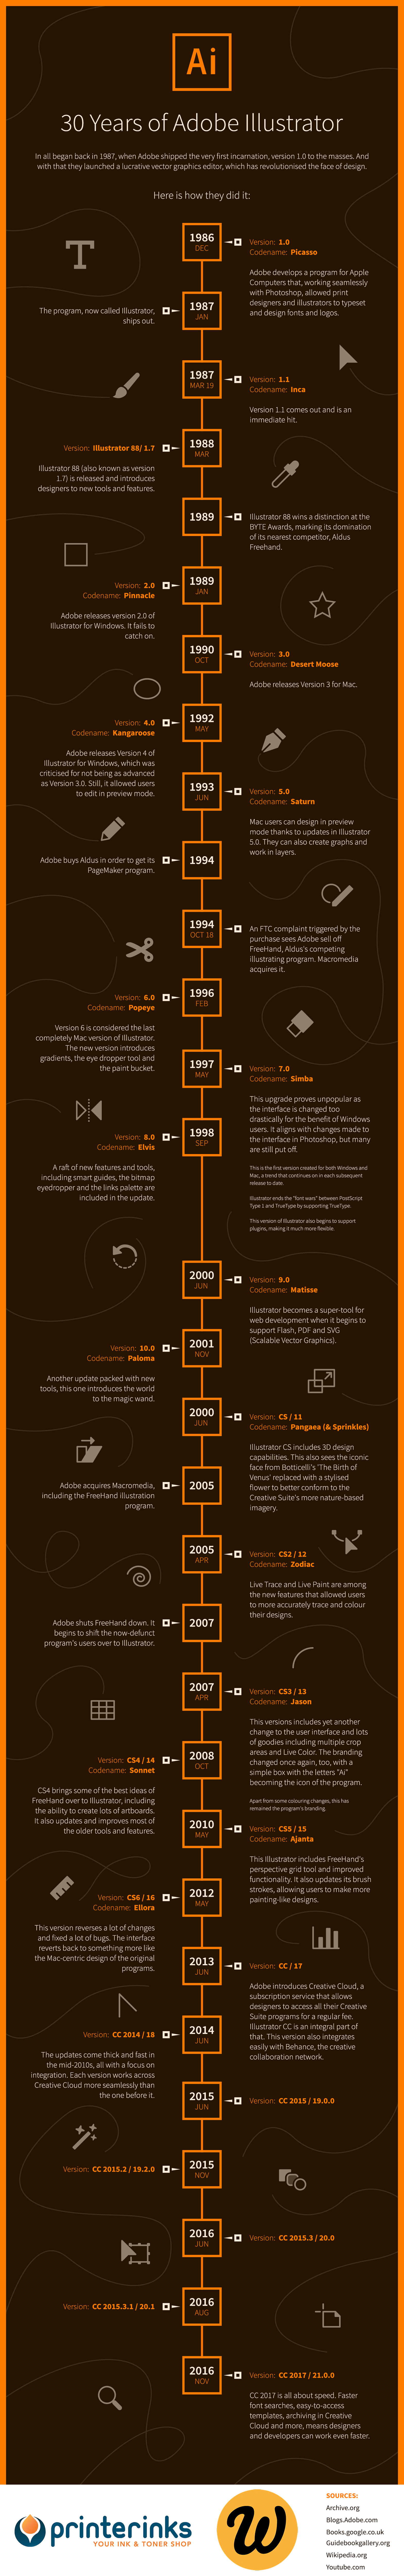 30 Years of Adobe Illustrator - Infographic